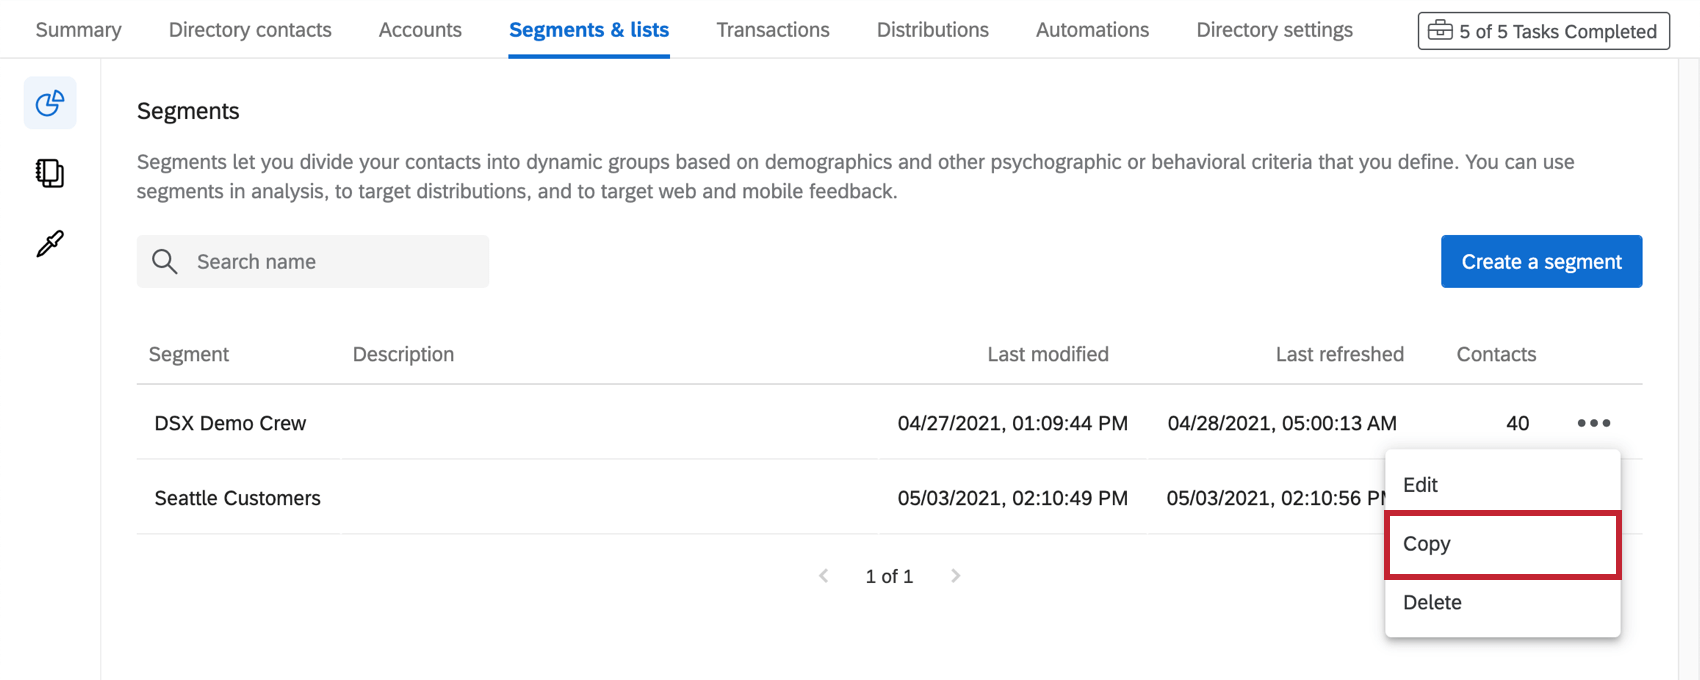 Dropdown next to segment expanded, second option to copy it